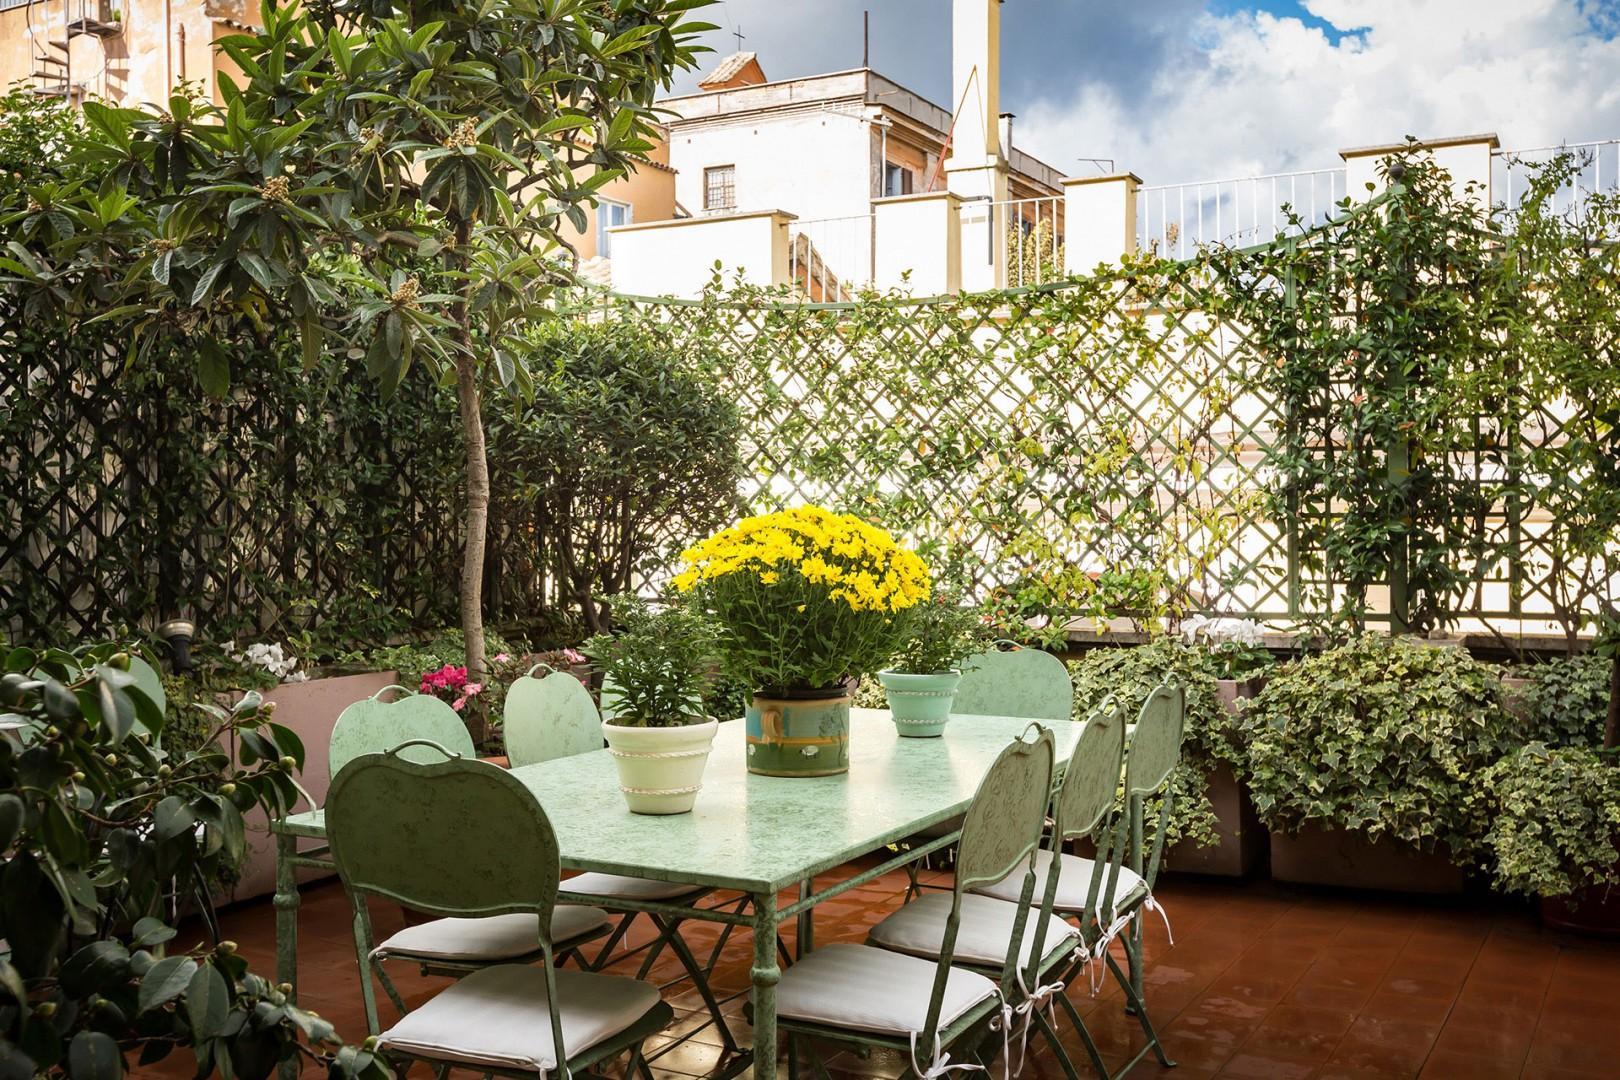 A pleasant morning on the terrace is extended with the awning that brings shade in warm weather.